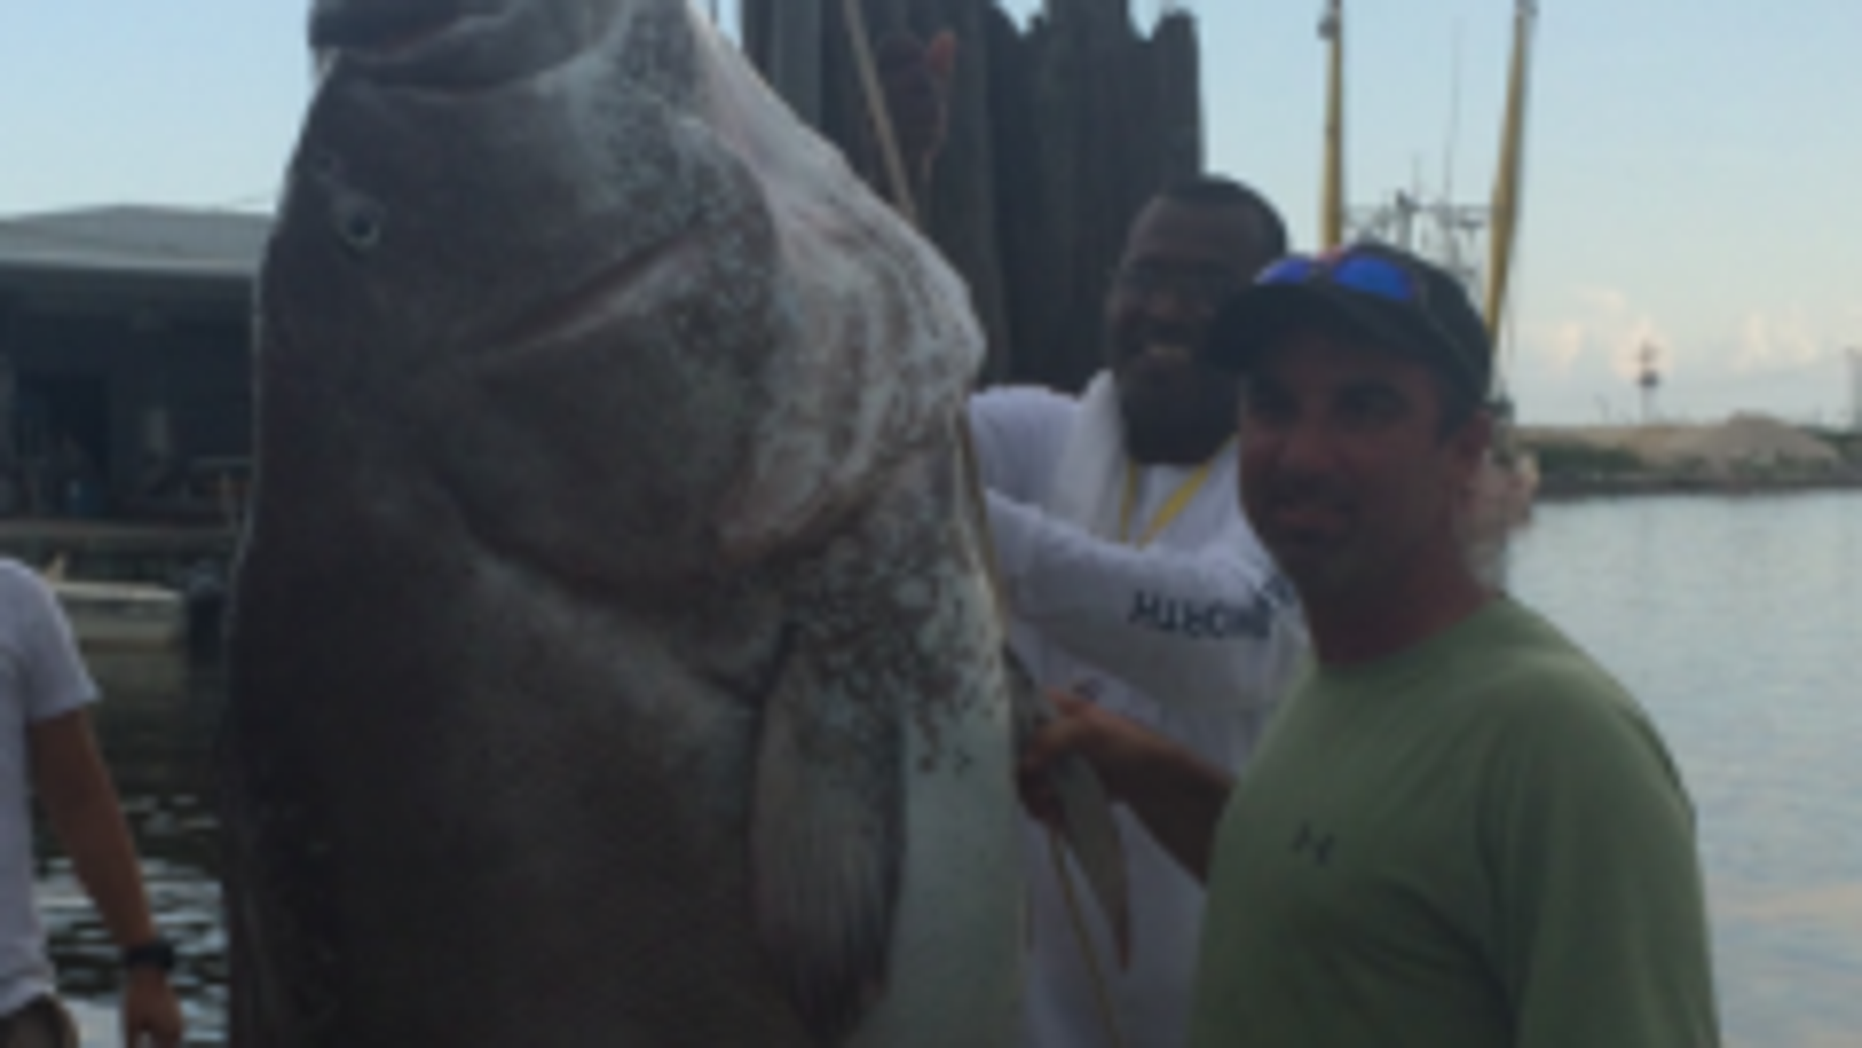 Simon Guidry poses with the 6-foot, 10-inch 305-pound Warsaw grouper